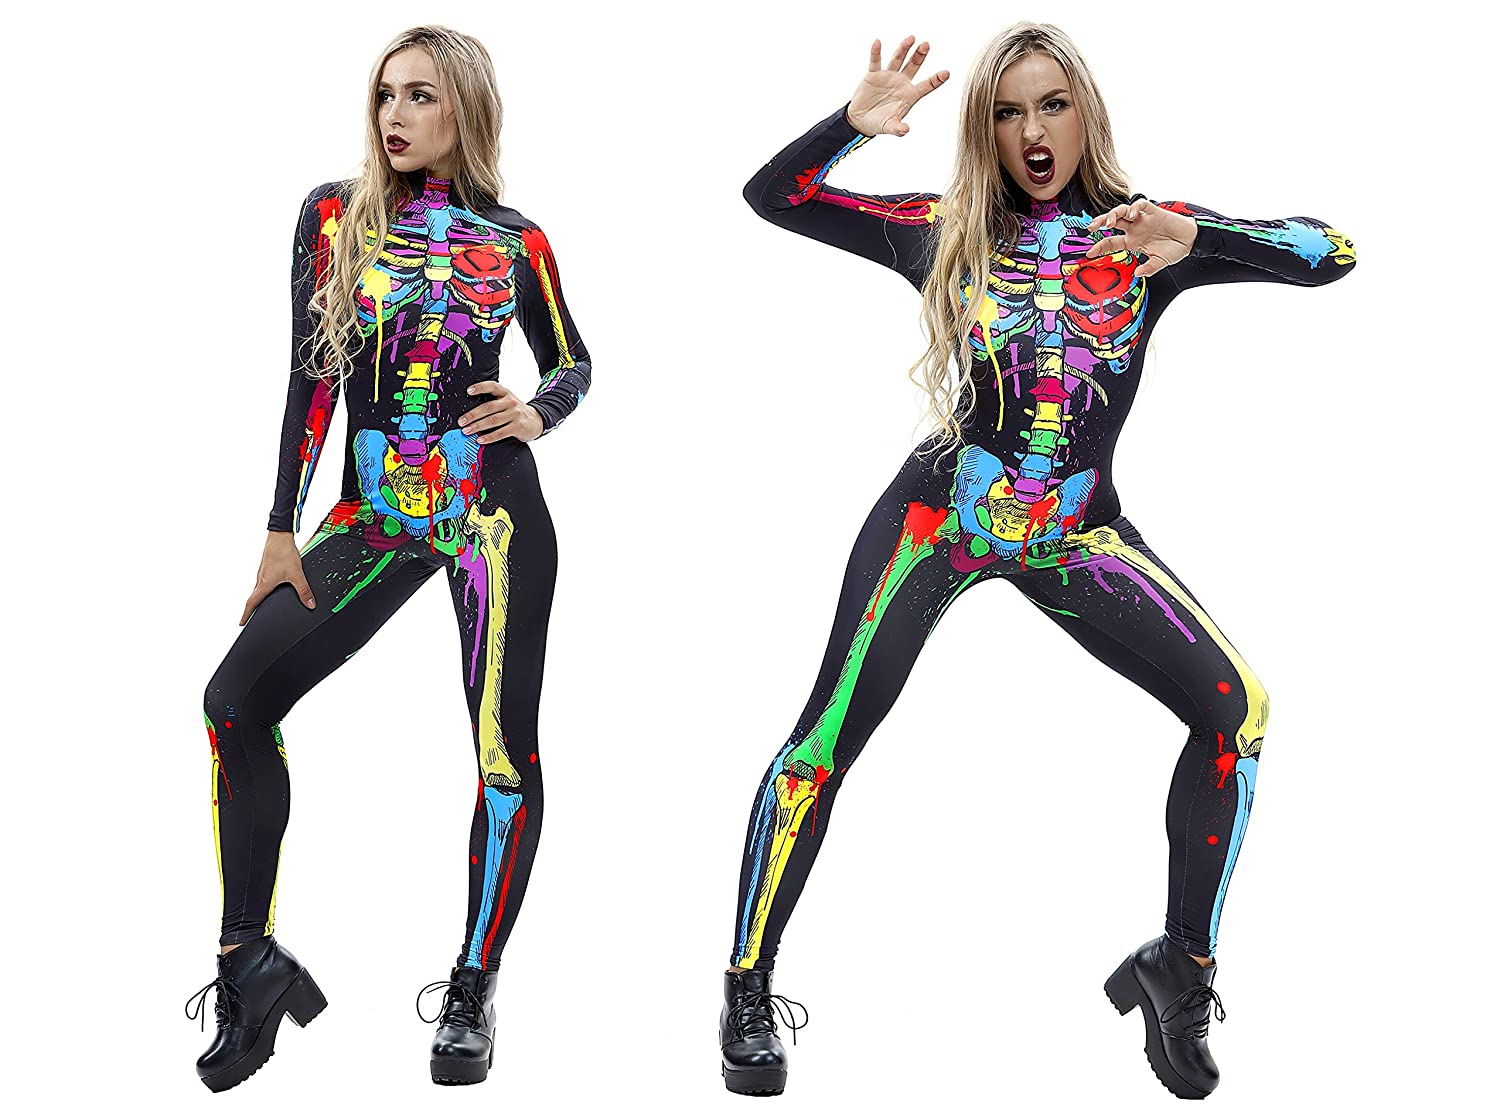 Urvip Skelett Overall Damen Knochen Skeleton Halloween Kostum